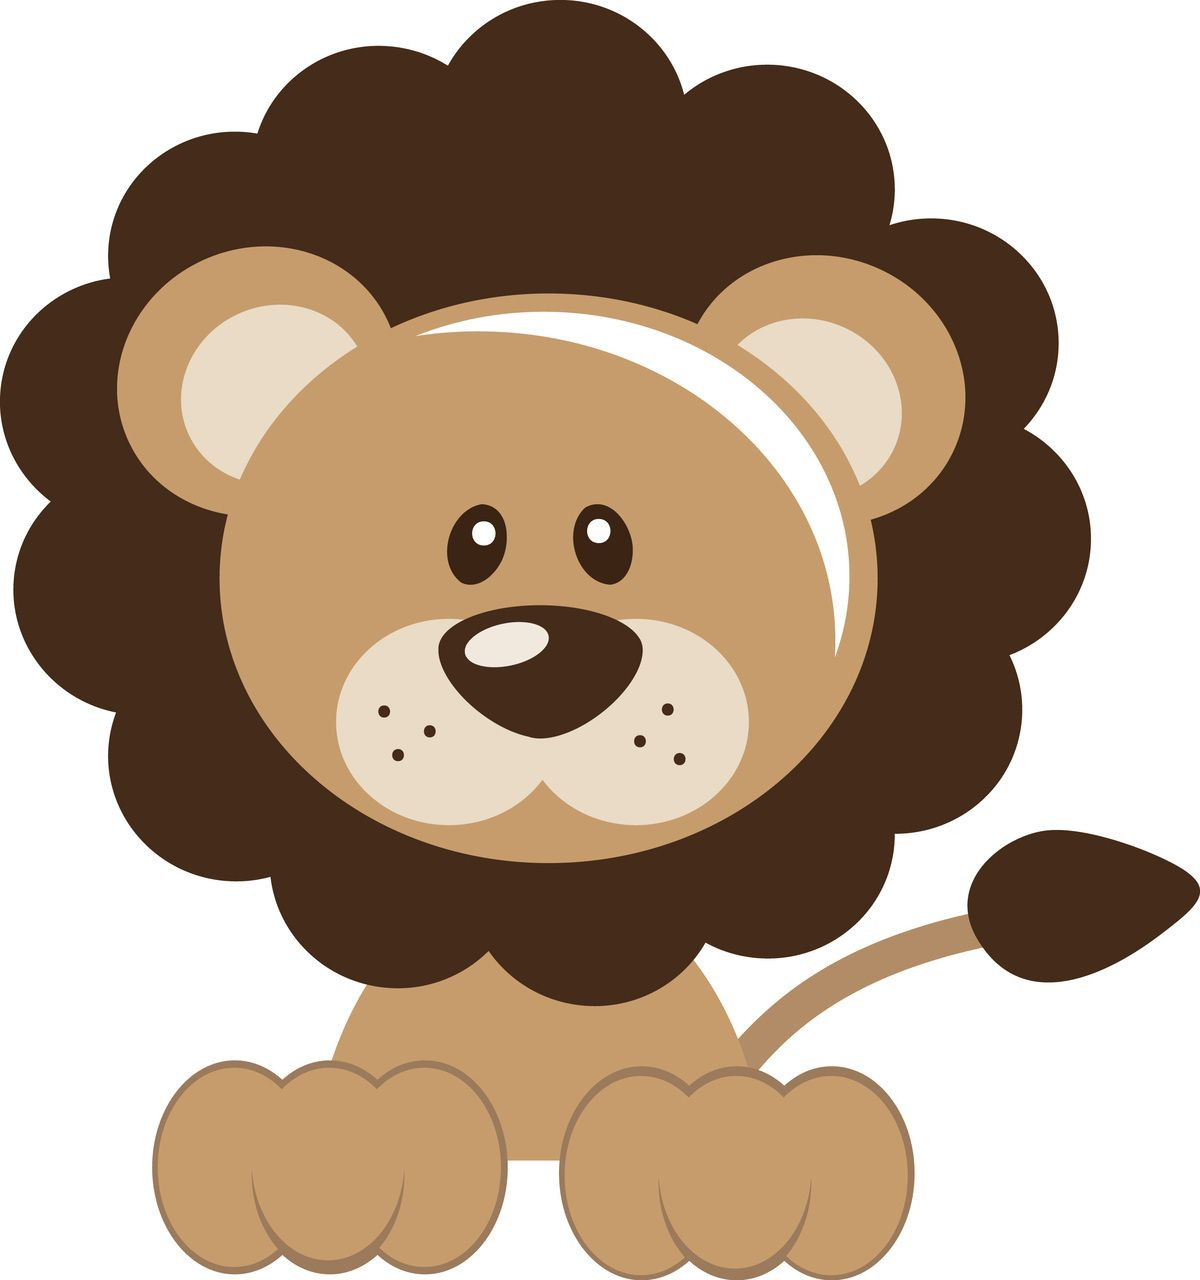 ppbn designs cute lion 40 off for members 0 50 http www rh pinterest ca free cute lion clipart cute lion face clipart